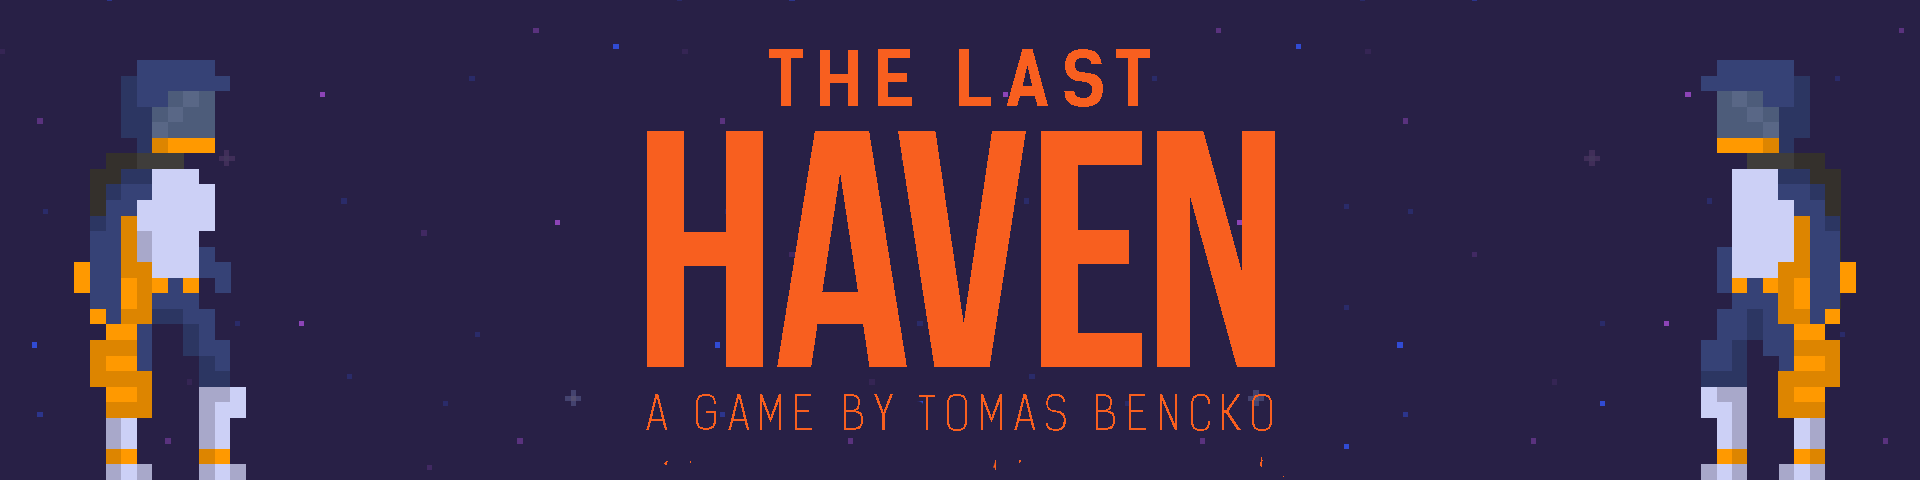 The Last Haven